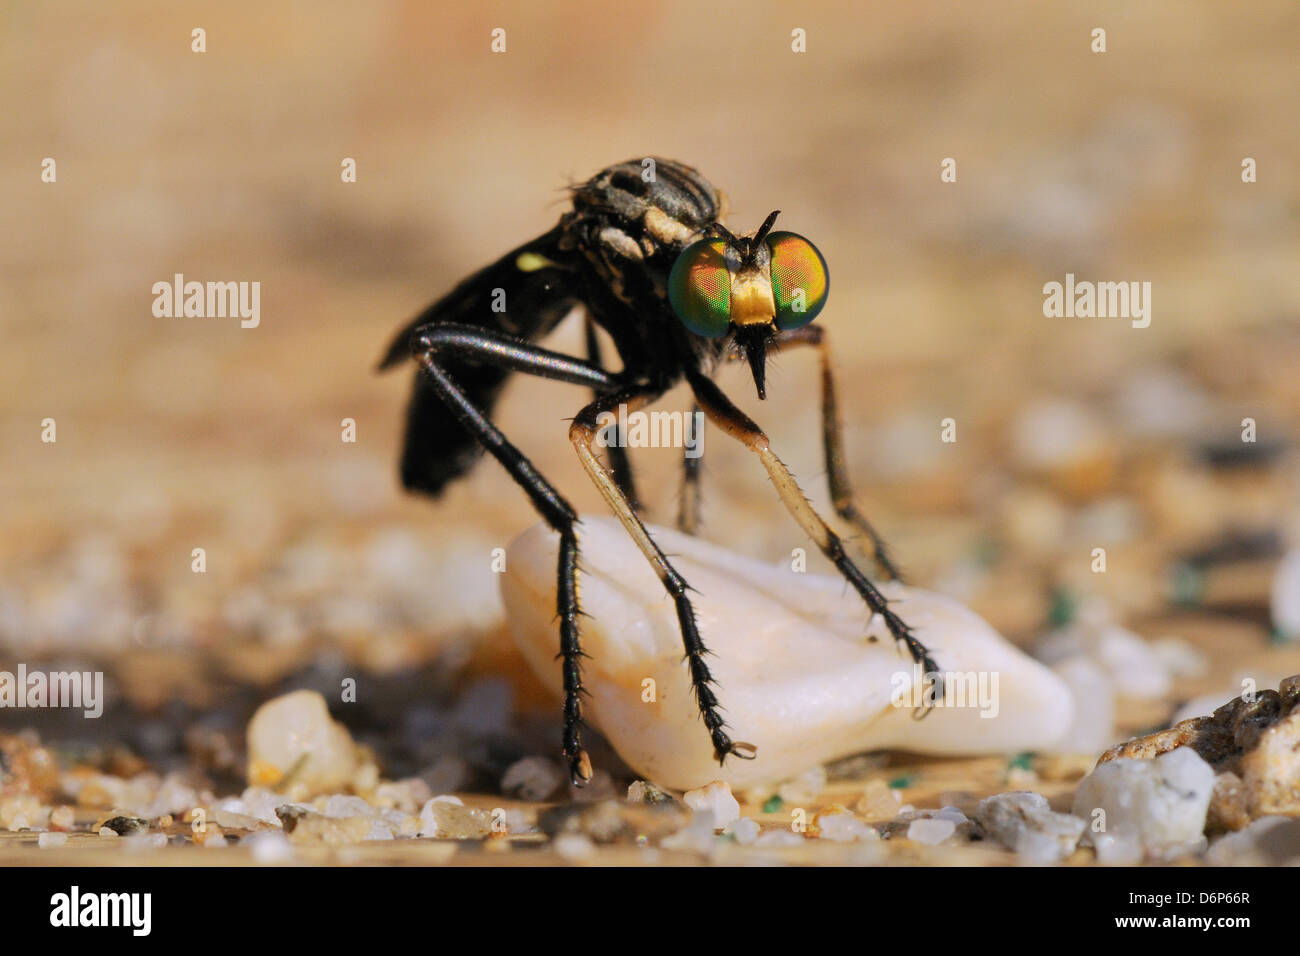 Robber fly (Saropogon sp.) hunting for aerial prey from a beach mat covered with sand and pebbles, Samos, Greece, - Stock Image